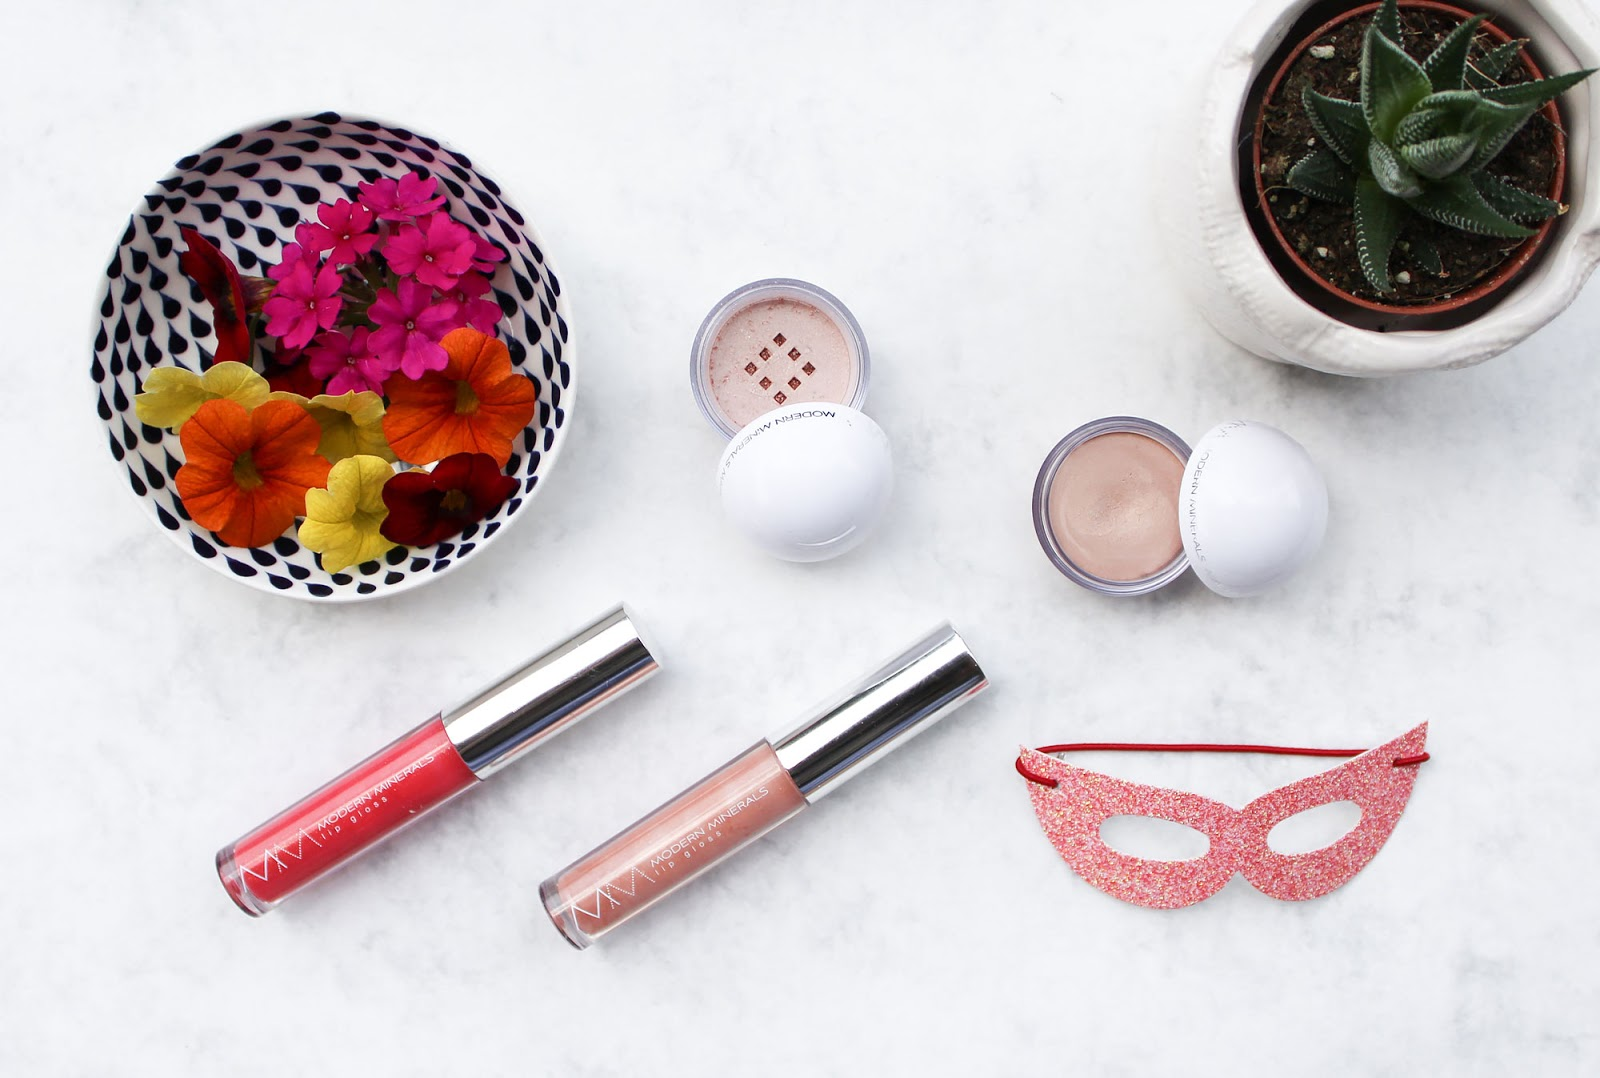 Modern Minerals X Lotus Wei Emotive Makeup Collection Small Bits